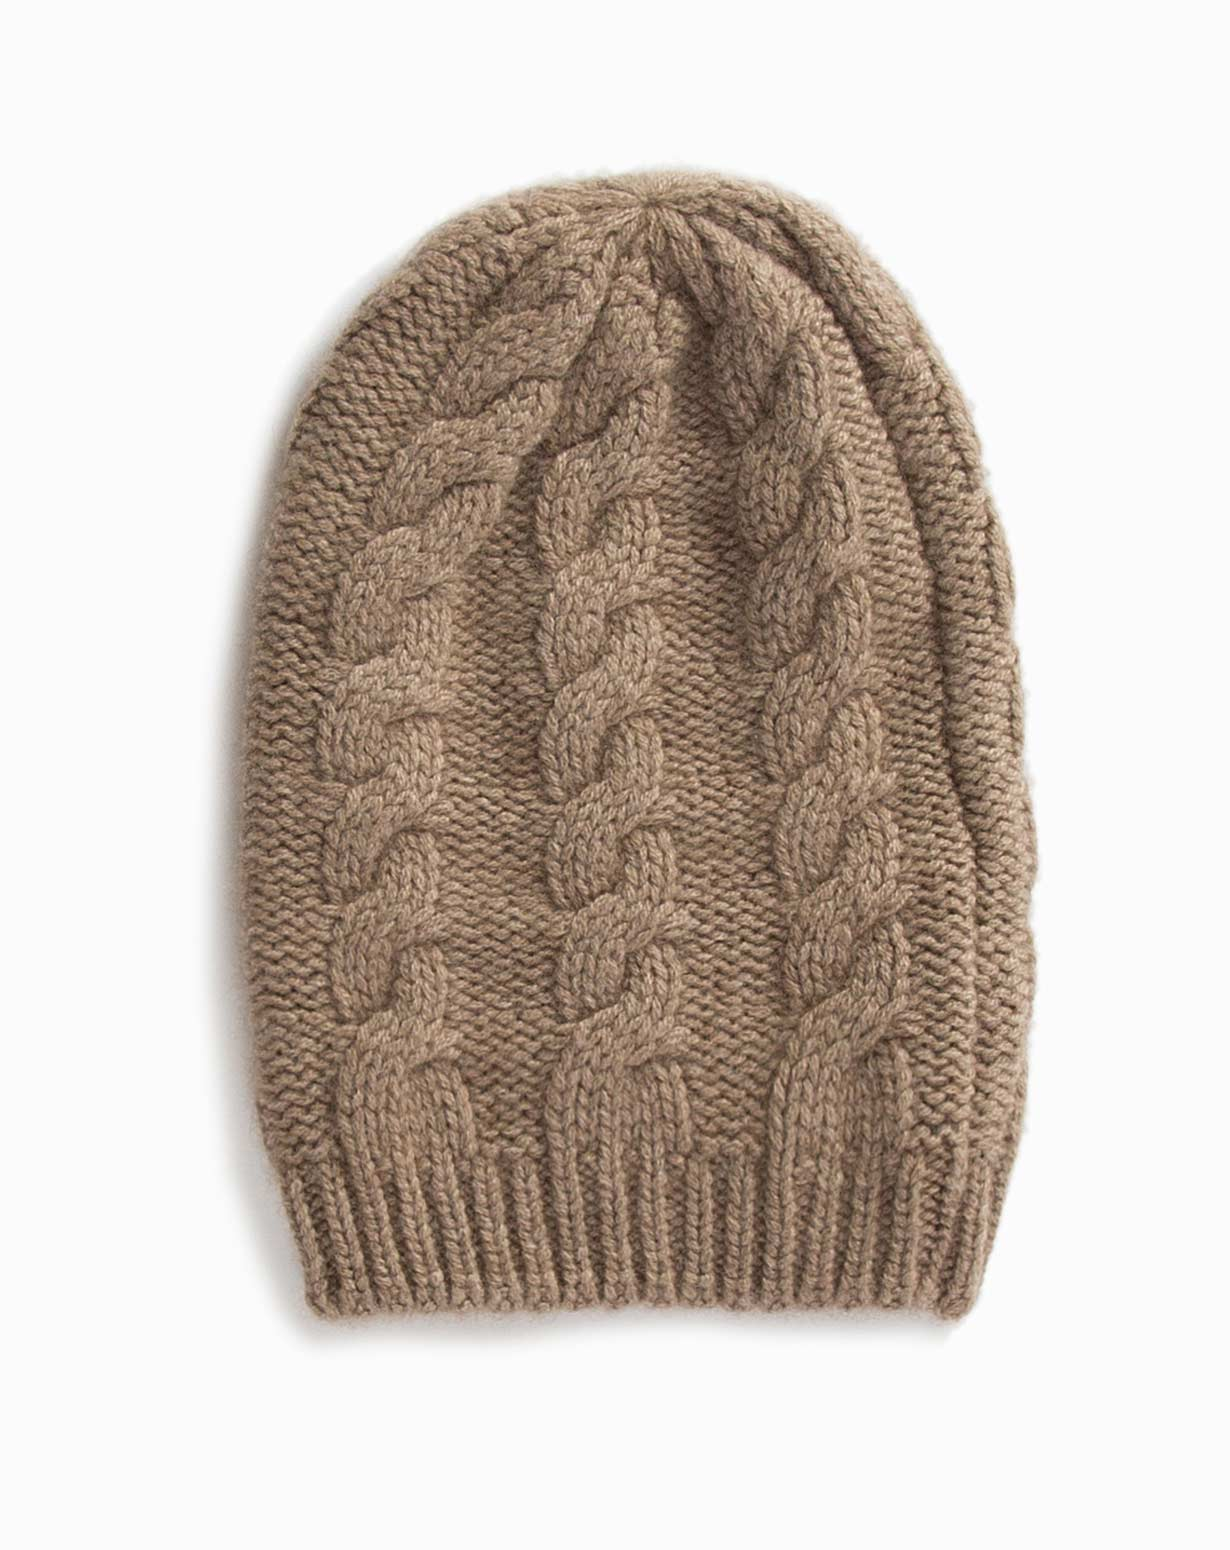 e8304cdd8b9 Women s Cashmere Cable Knit Beanie